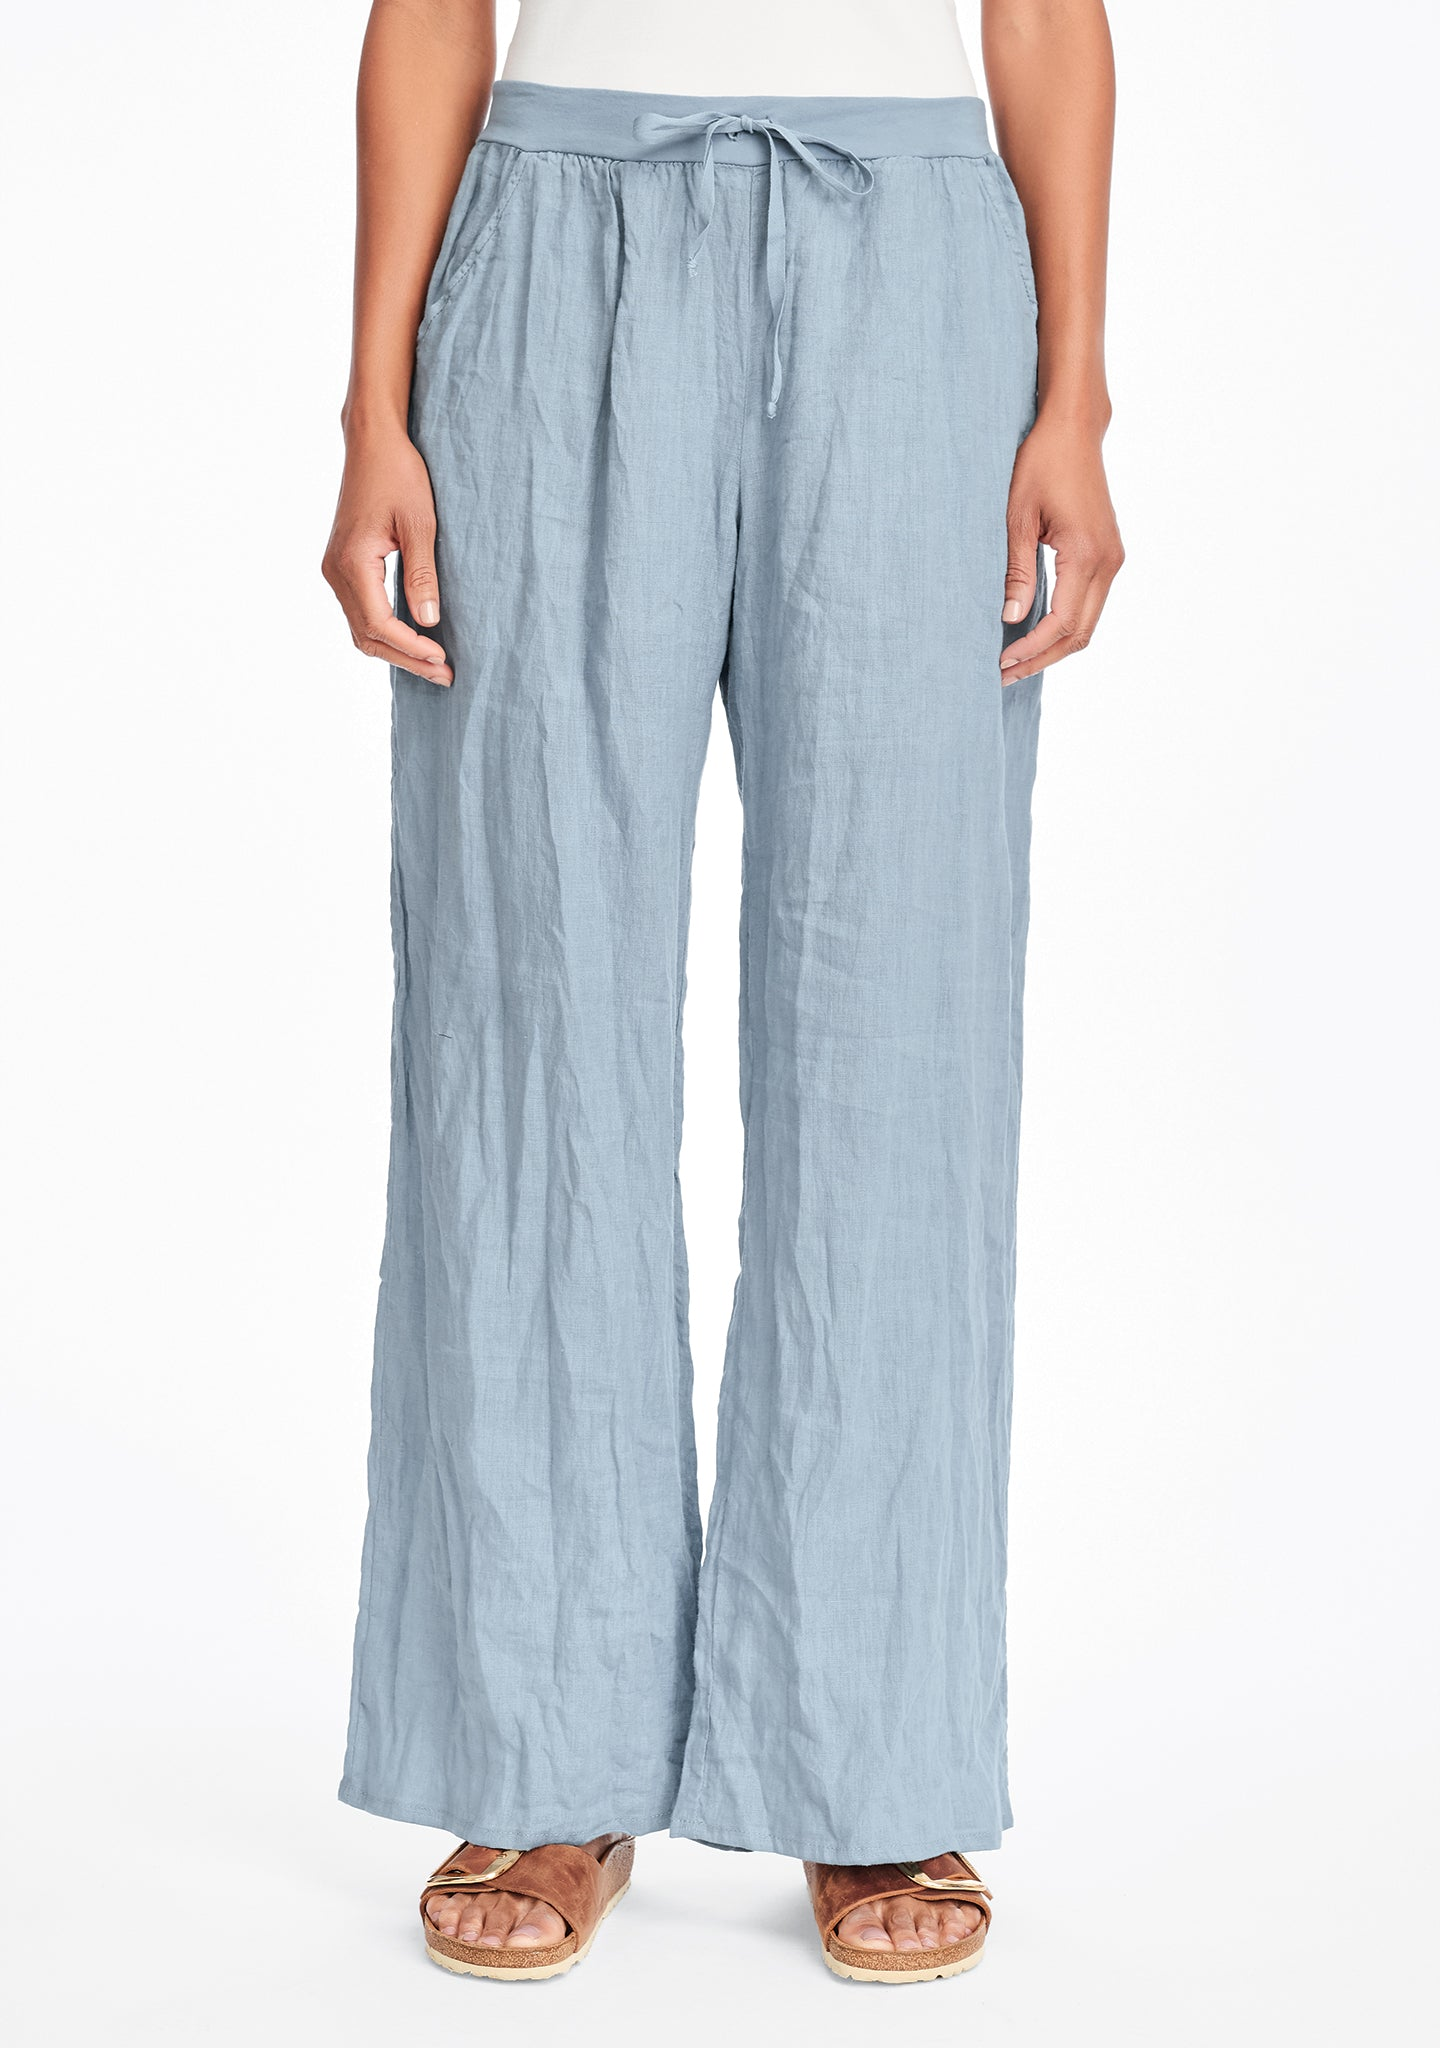 flat iron pant linen drawstring pants blue